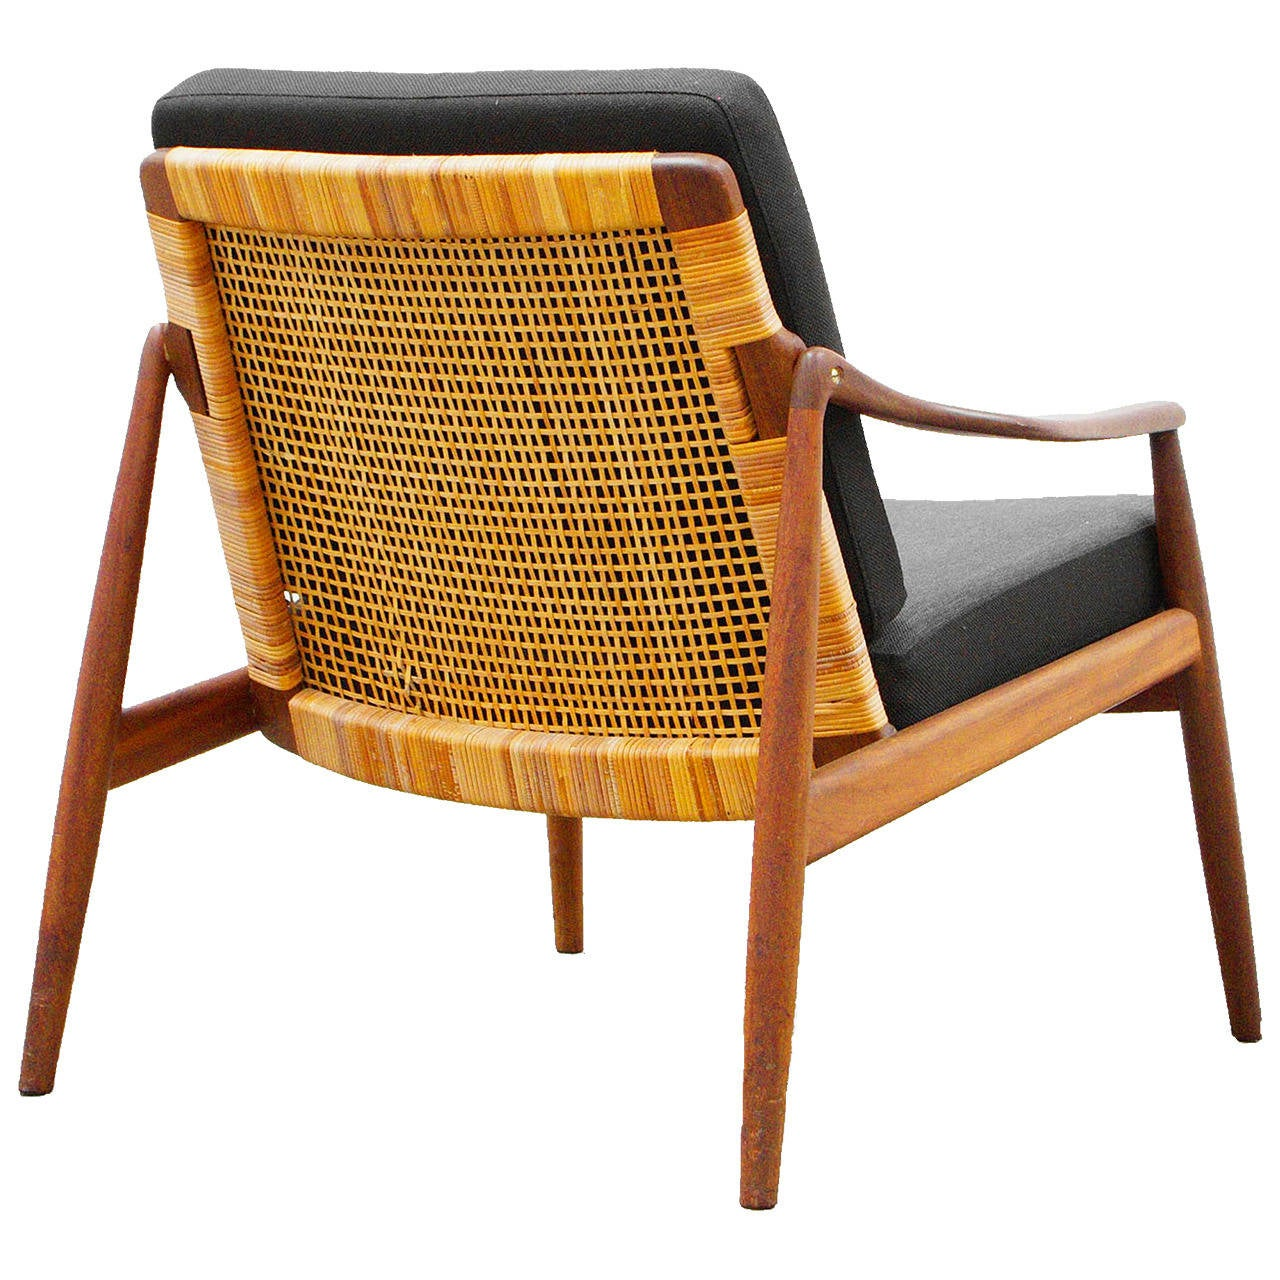 Easy chair by hartmut lohmeyer for wilkhahn teak mid 20th for Mid 20th century furniture